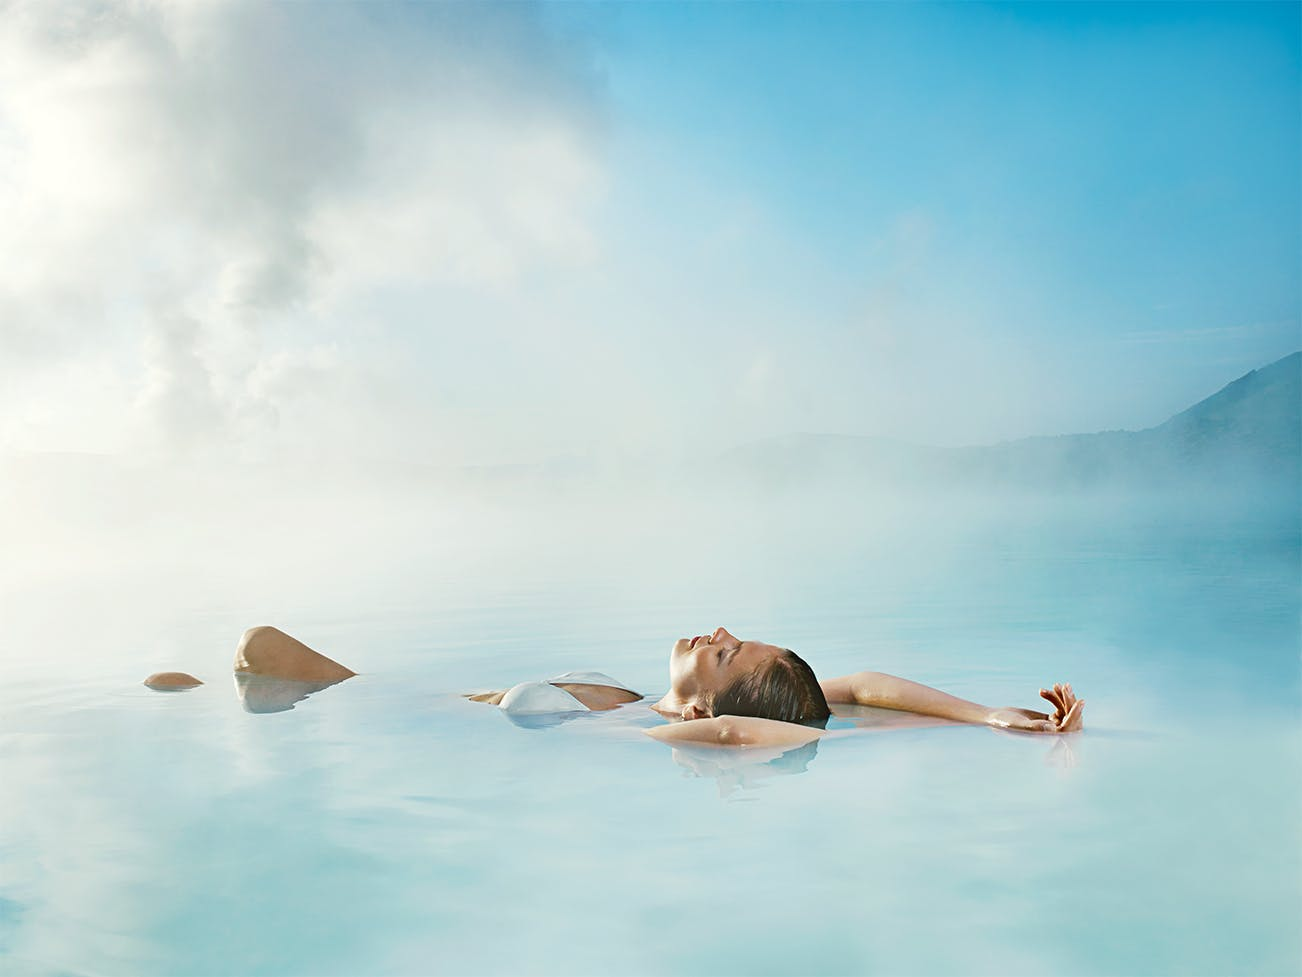 One of the best ways to introduce yourself to Iceland is by bathing in the magical waters of the Blue Lagoon, the famous spa on the Reykjanes Peninsula.